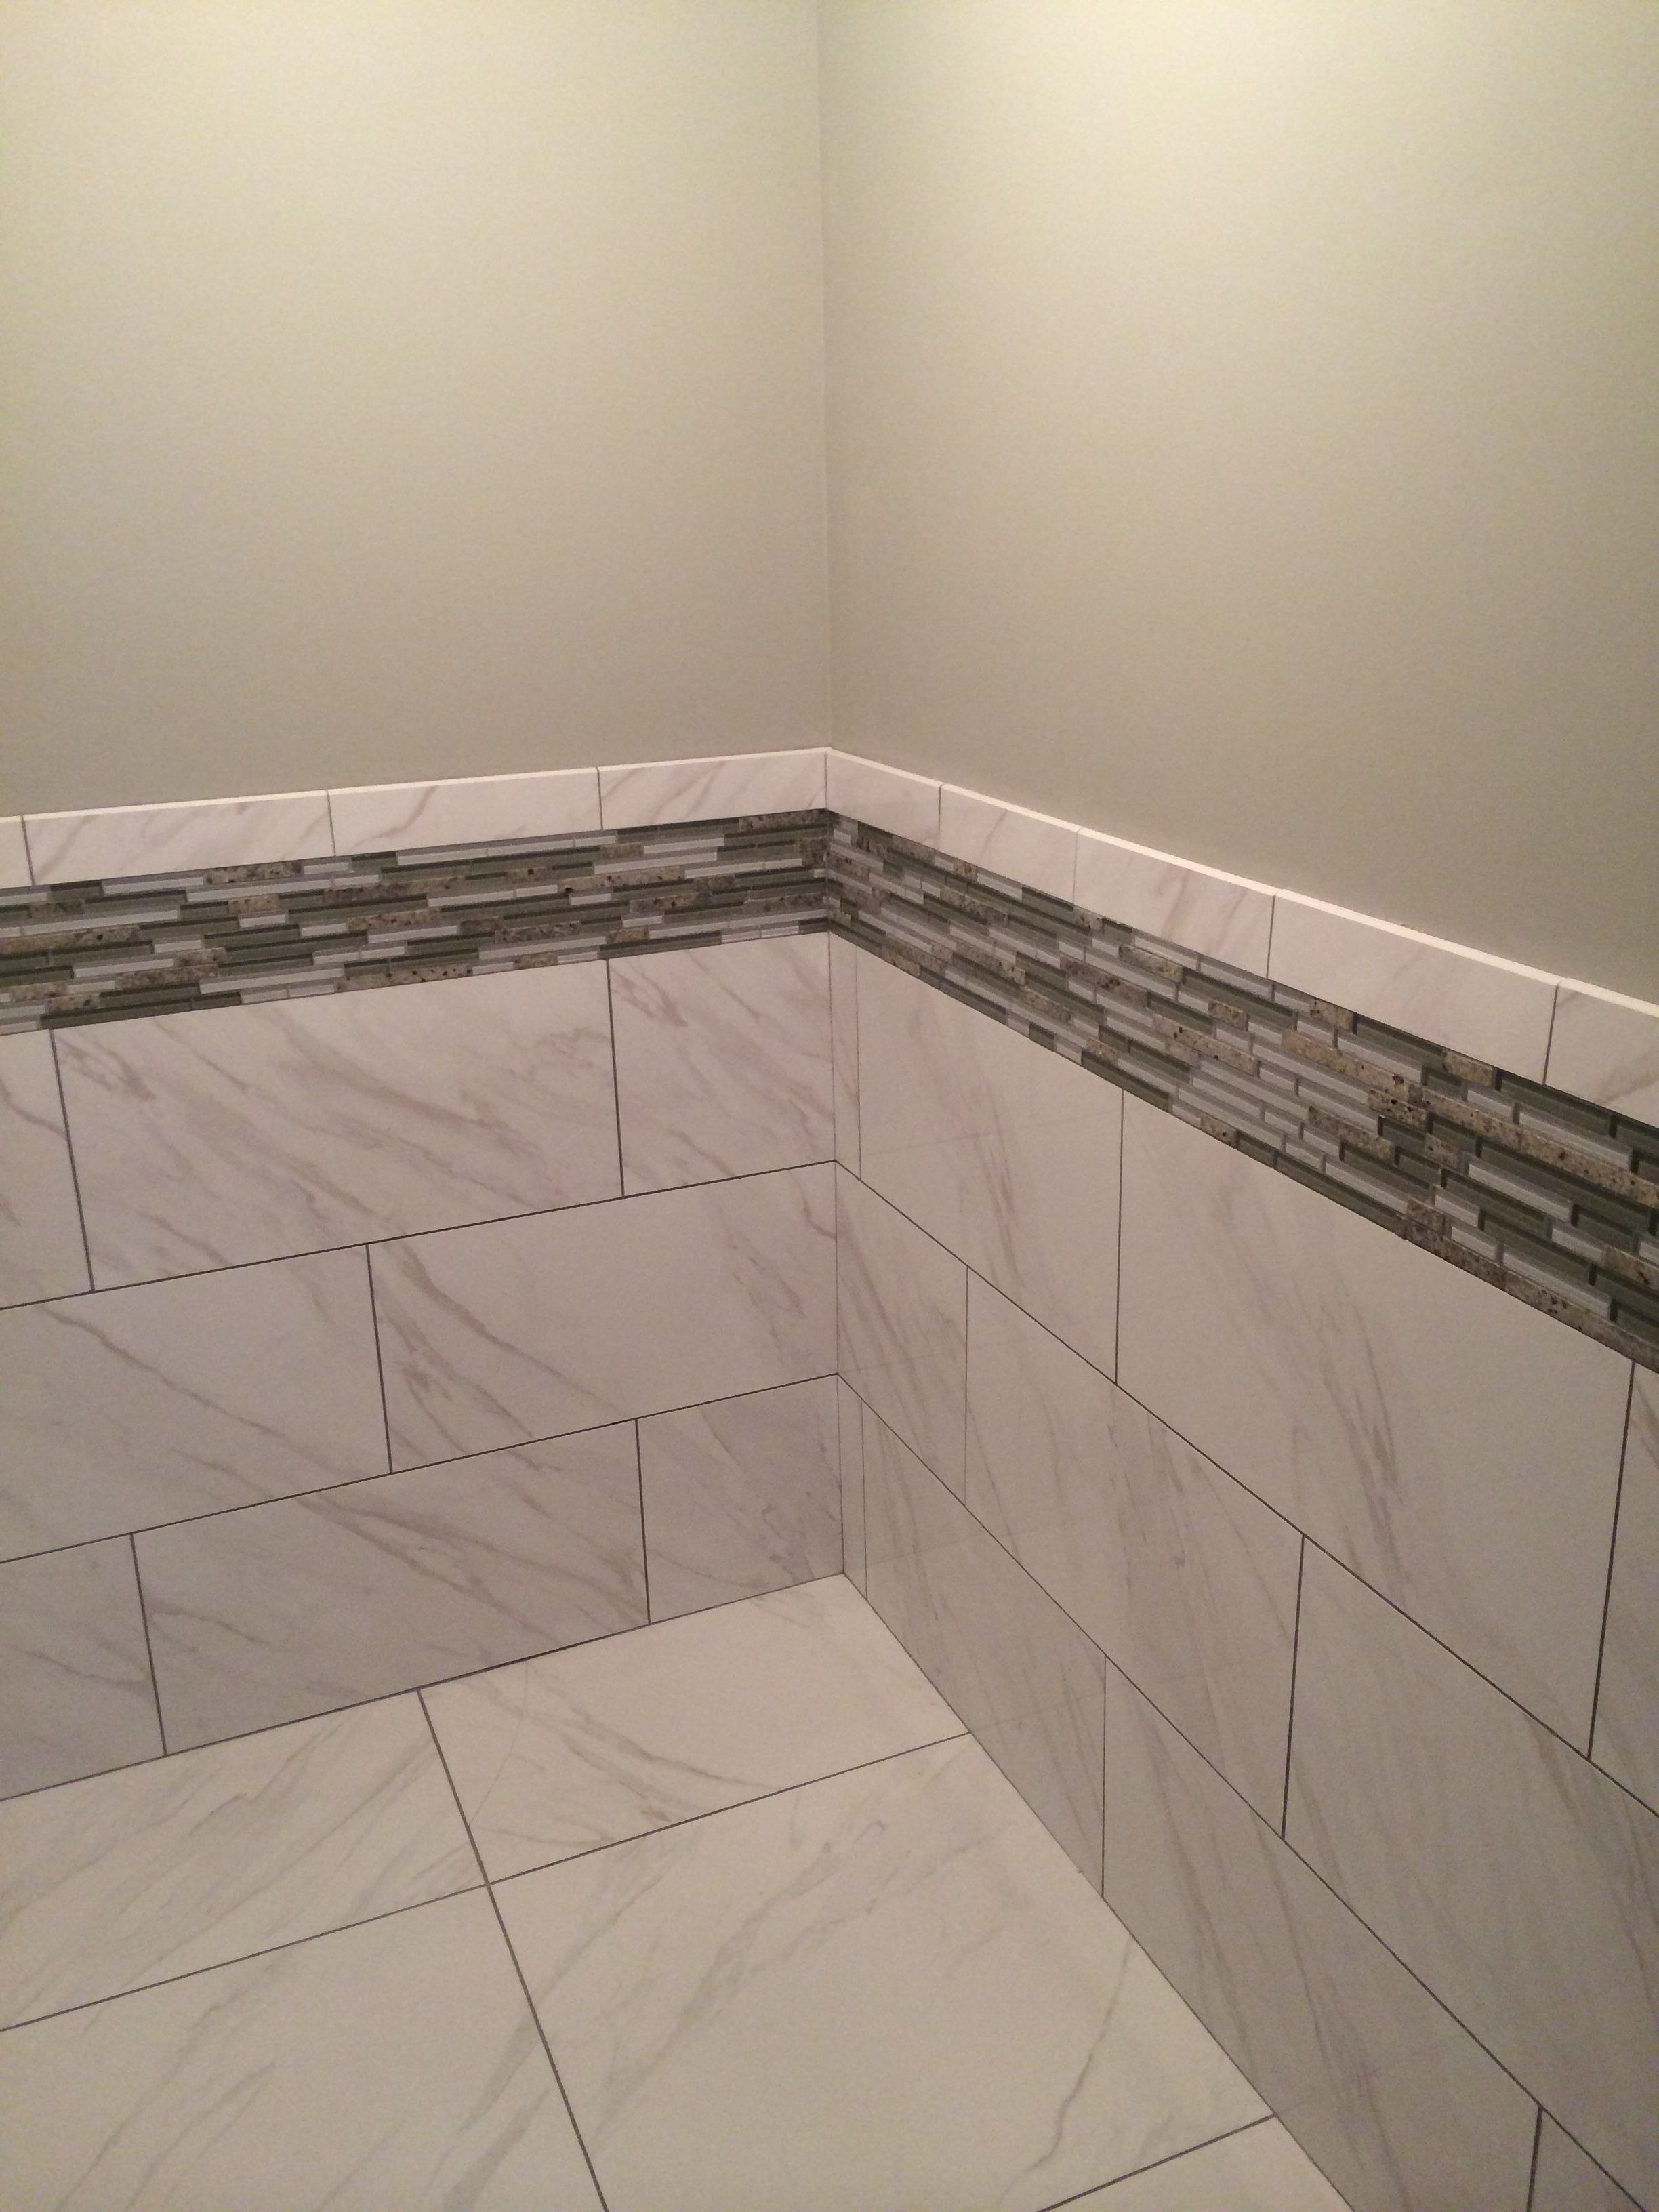 Daltile Florentine Carrara 12x24 Gloss On The Walls With Matte 24x24 On The Floor And Bostik Dimension Grout And K Daltile Master Shower Small Bathroom Remodel